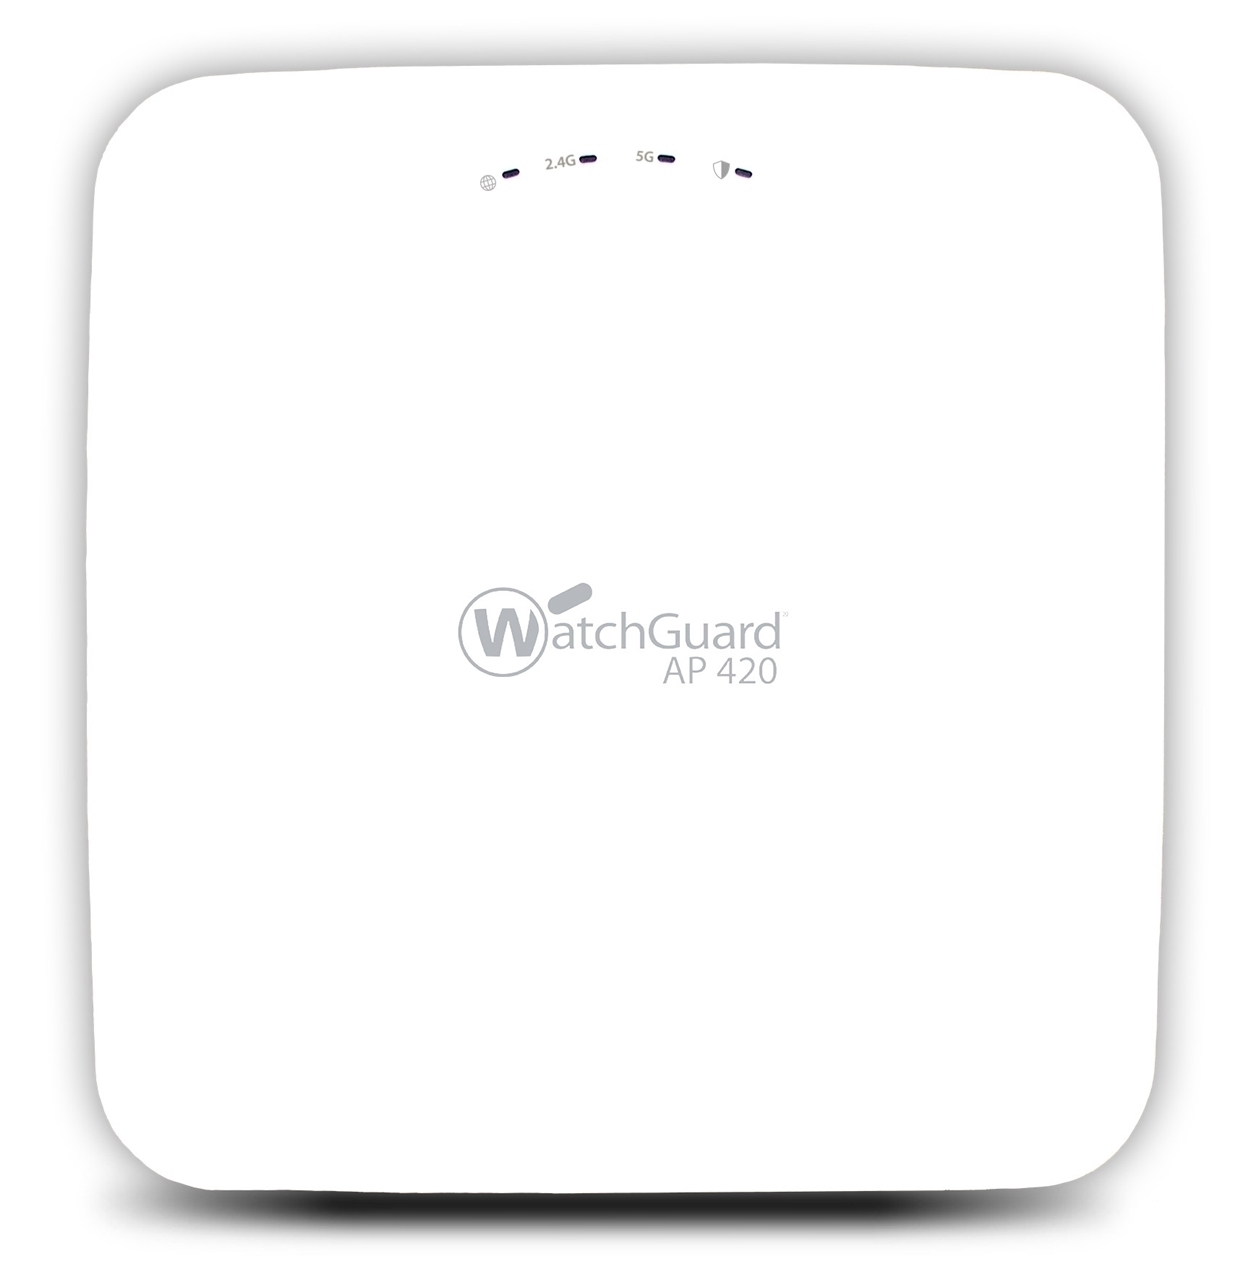 Picture of WatchGuard AP420 and 1-yr Secure Wi-Fi